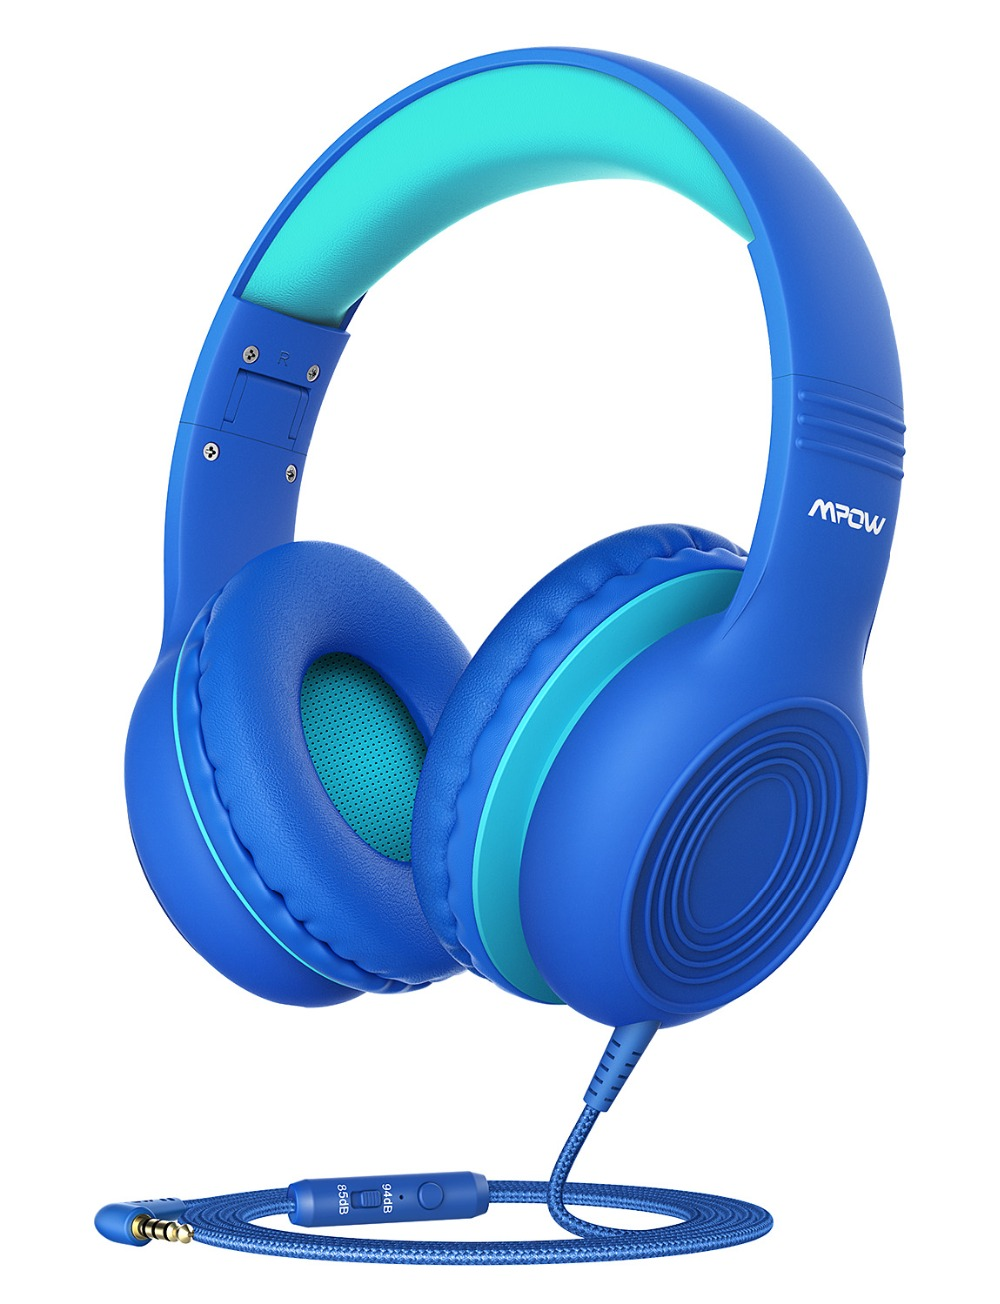 Mpow CH6 85dB Hearing Protection Headphones For Kids Over-Ear Kids Headphones With Microphone For PCiPadLaptopTabletsPhones (10)